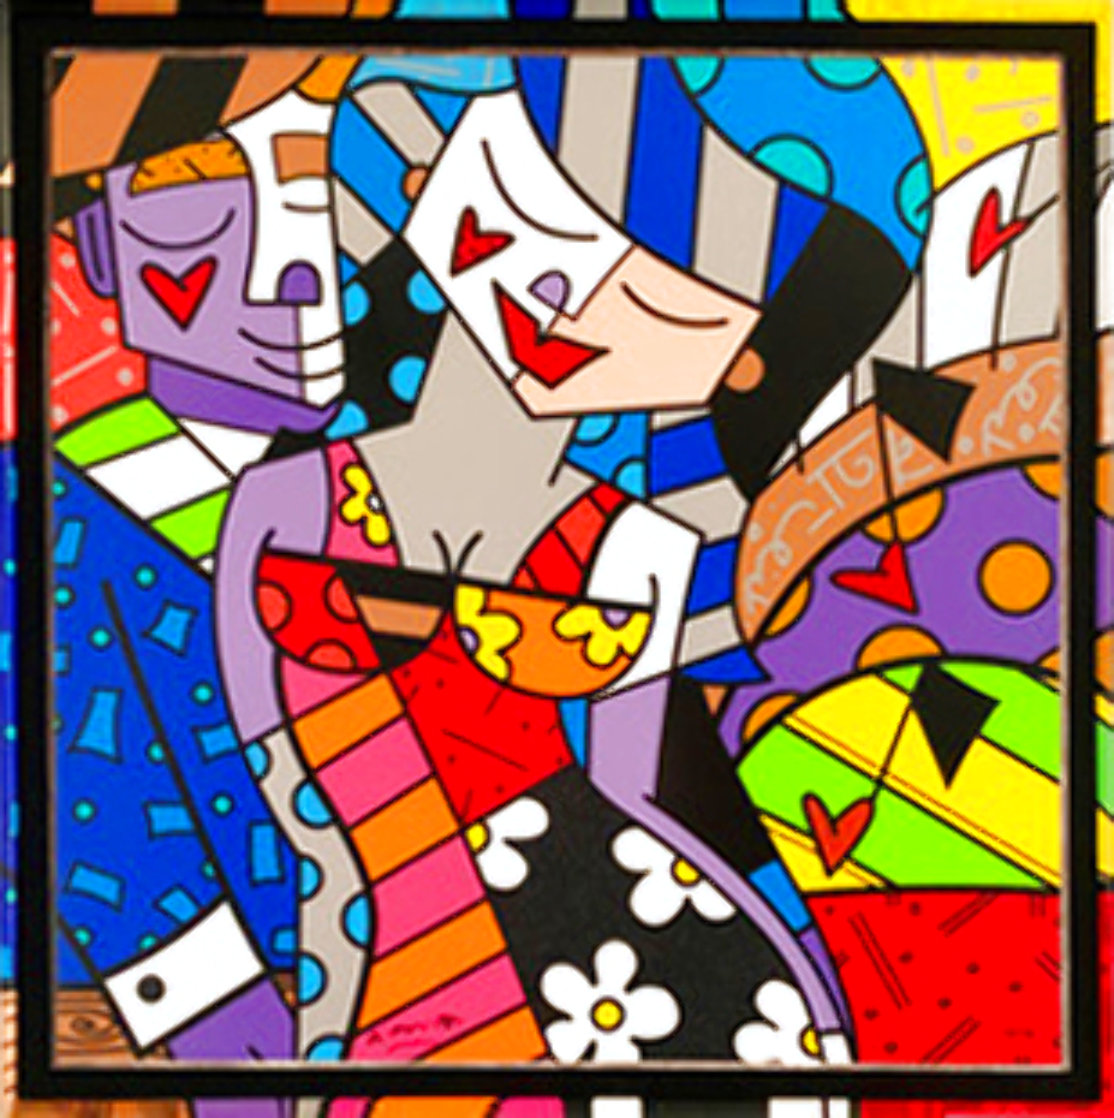 Tonight 2007 Huge 49x31 Limited Edition Print by Romero Britto